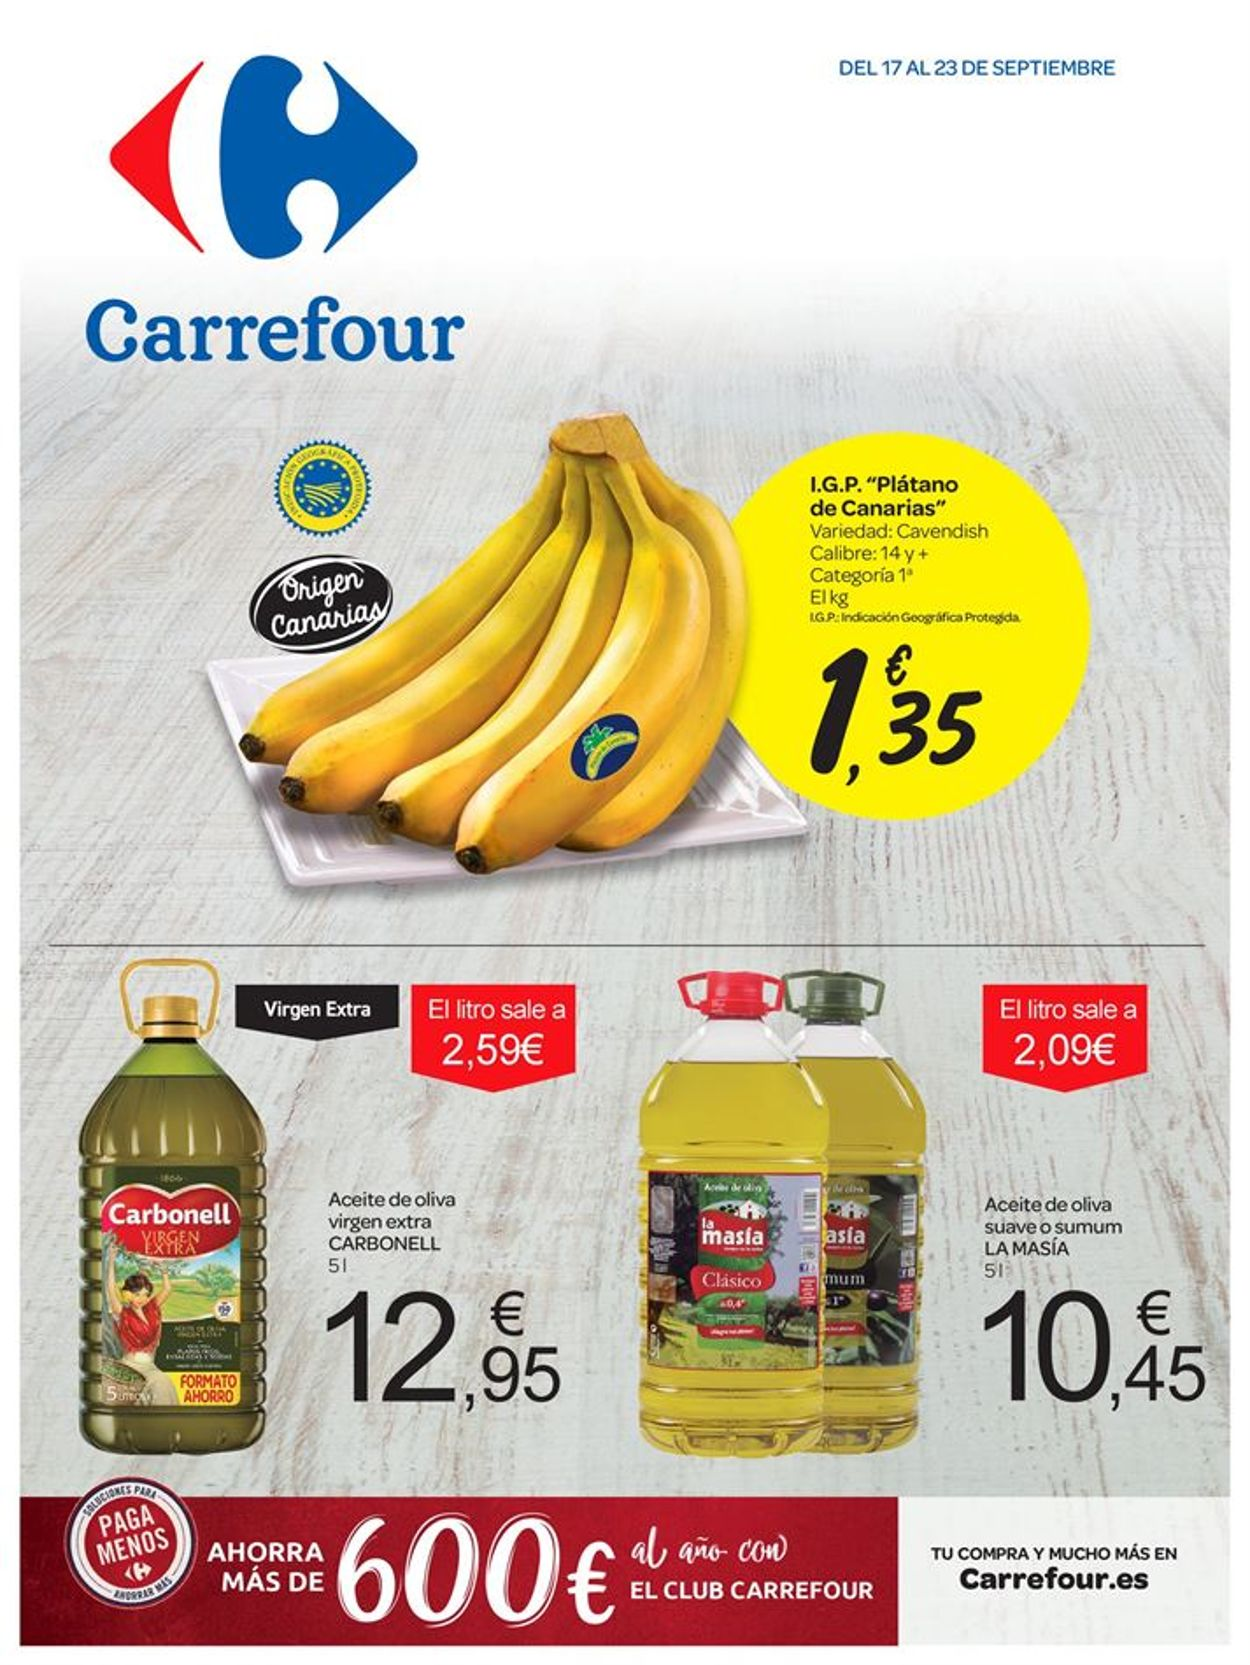 Carrefour Folleto - 17.09-23.09.2019